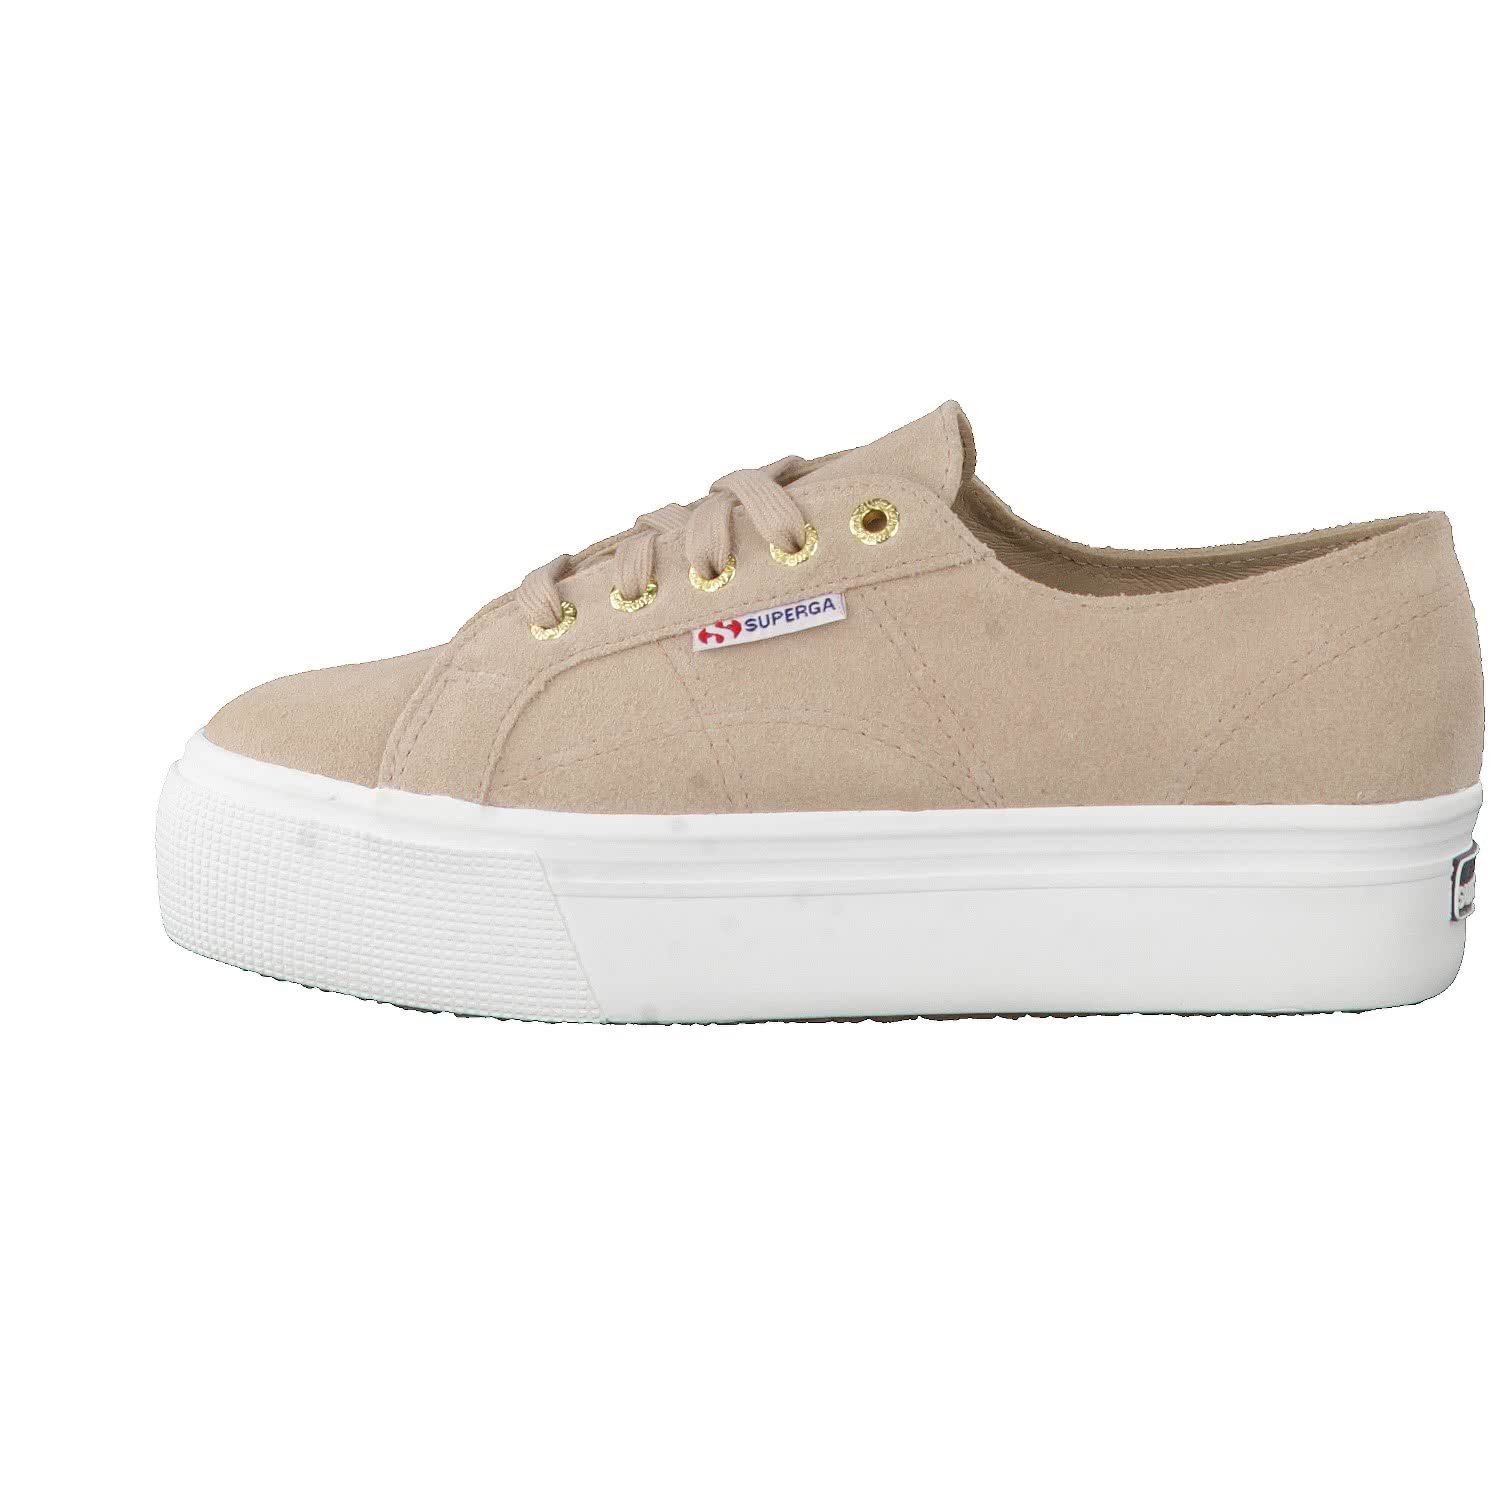 Superga 2790 Linea Updown Flatform, Sneakers Basses Adulte Mixte, (901 White), 42